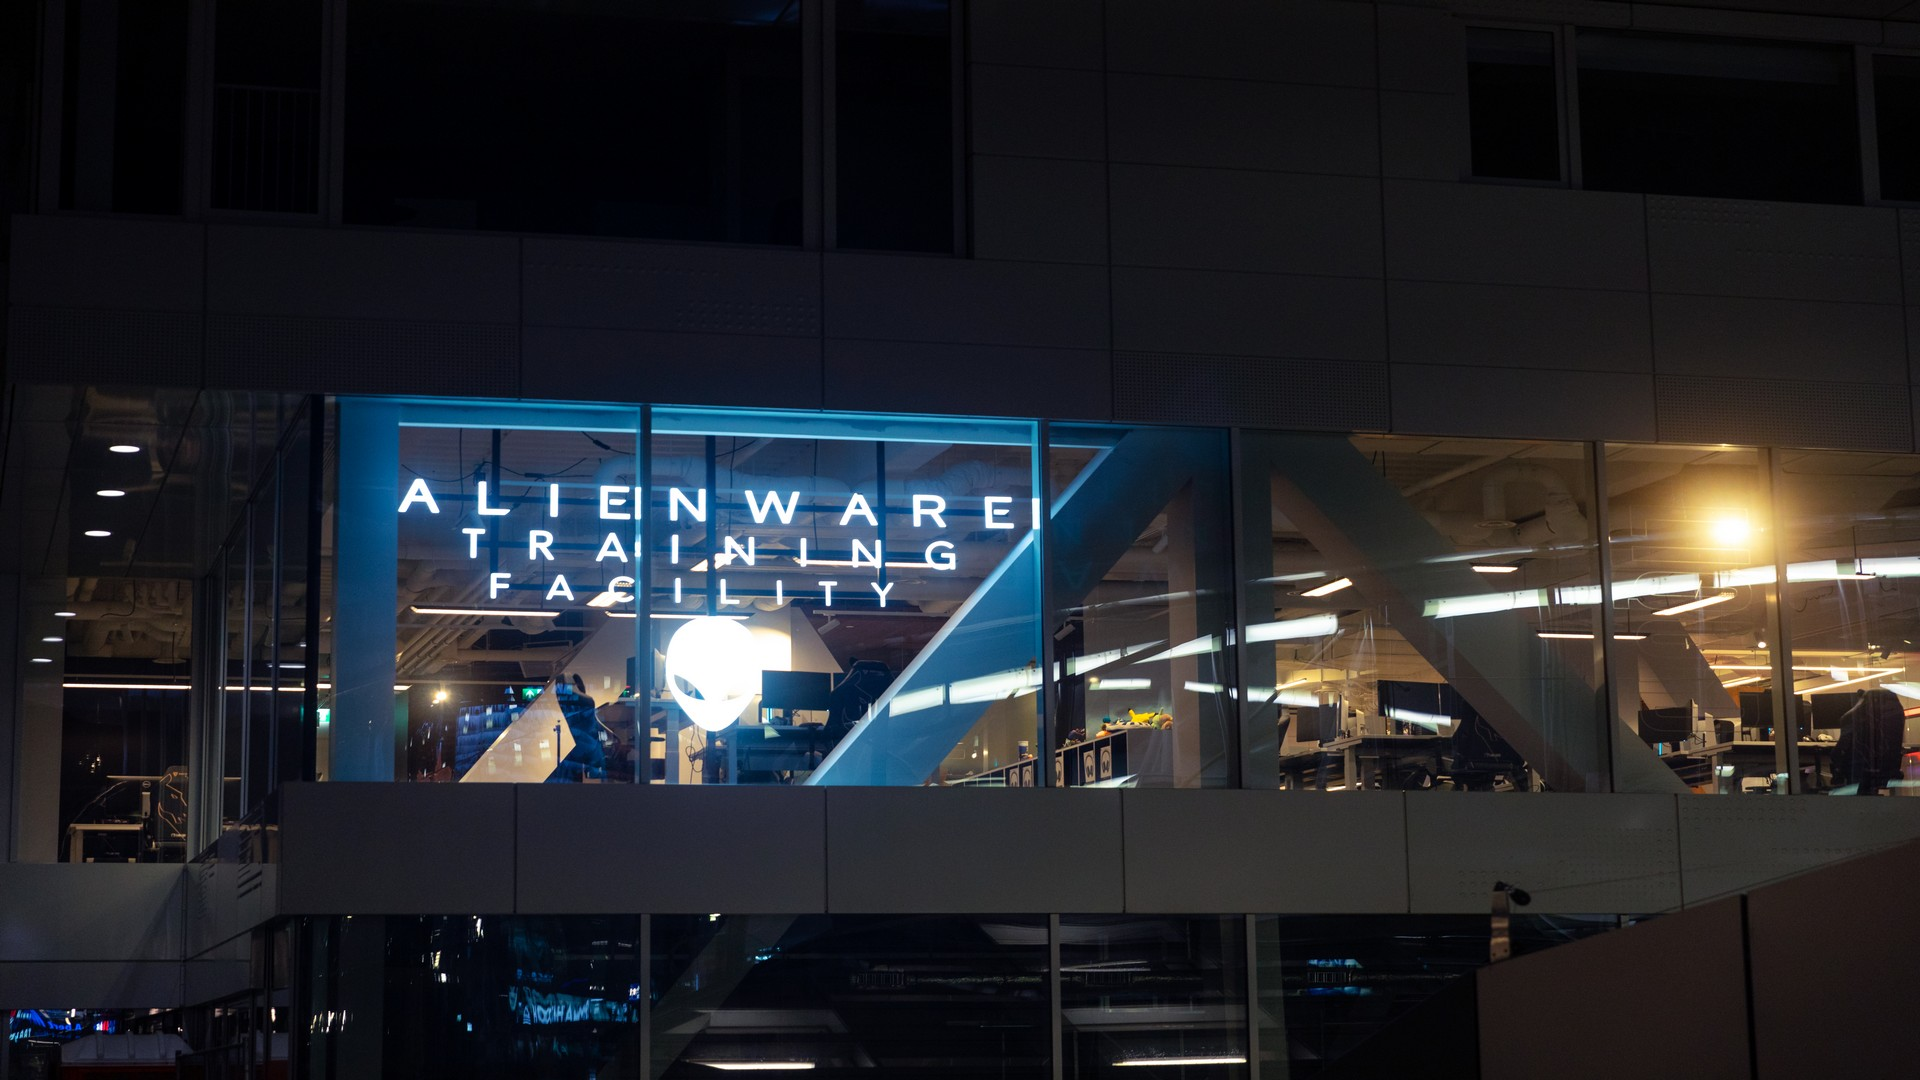 Image of the Dell Alienware Facility window showing logo